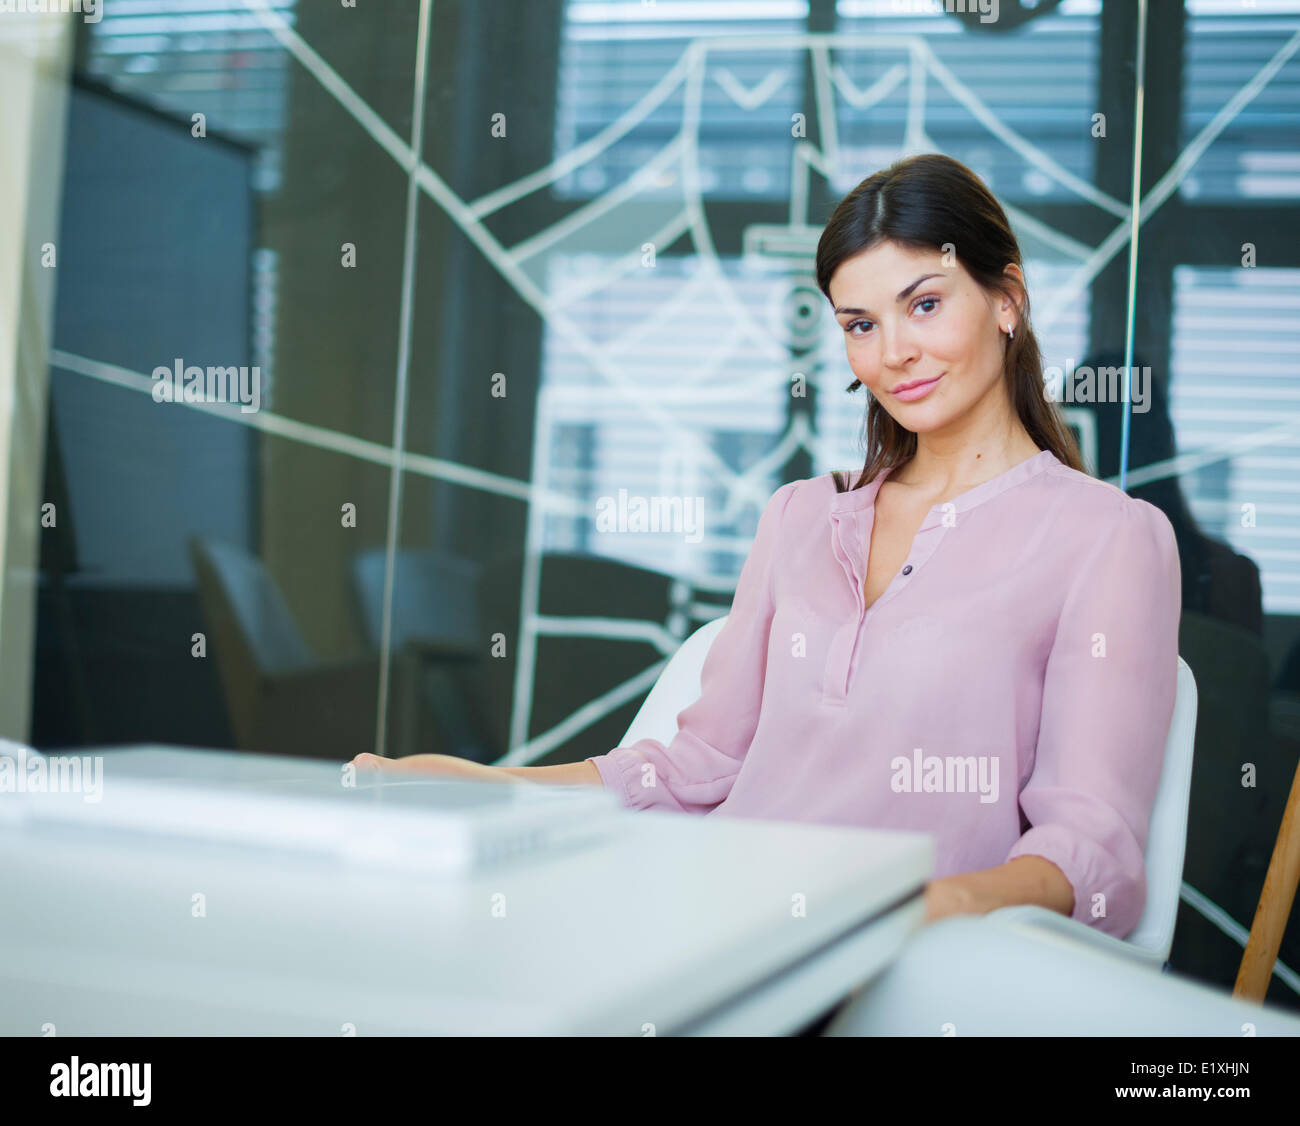 Portrait of confident young businesswoman at conference table - Stock Image